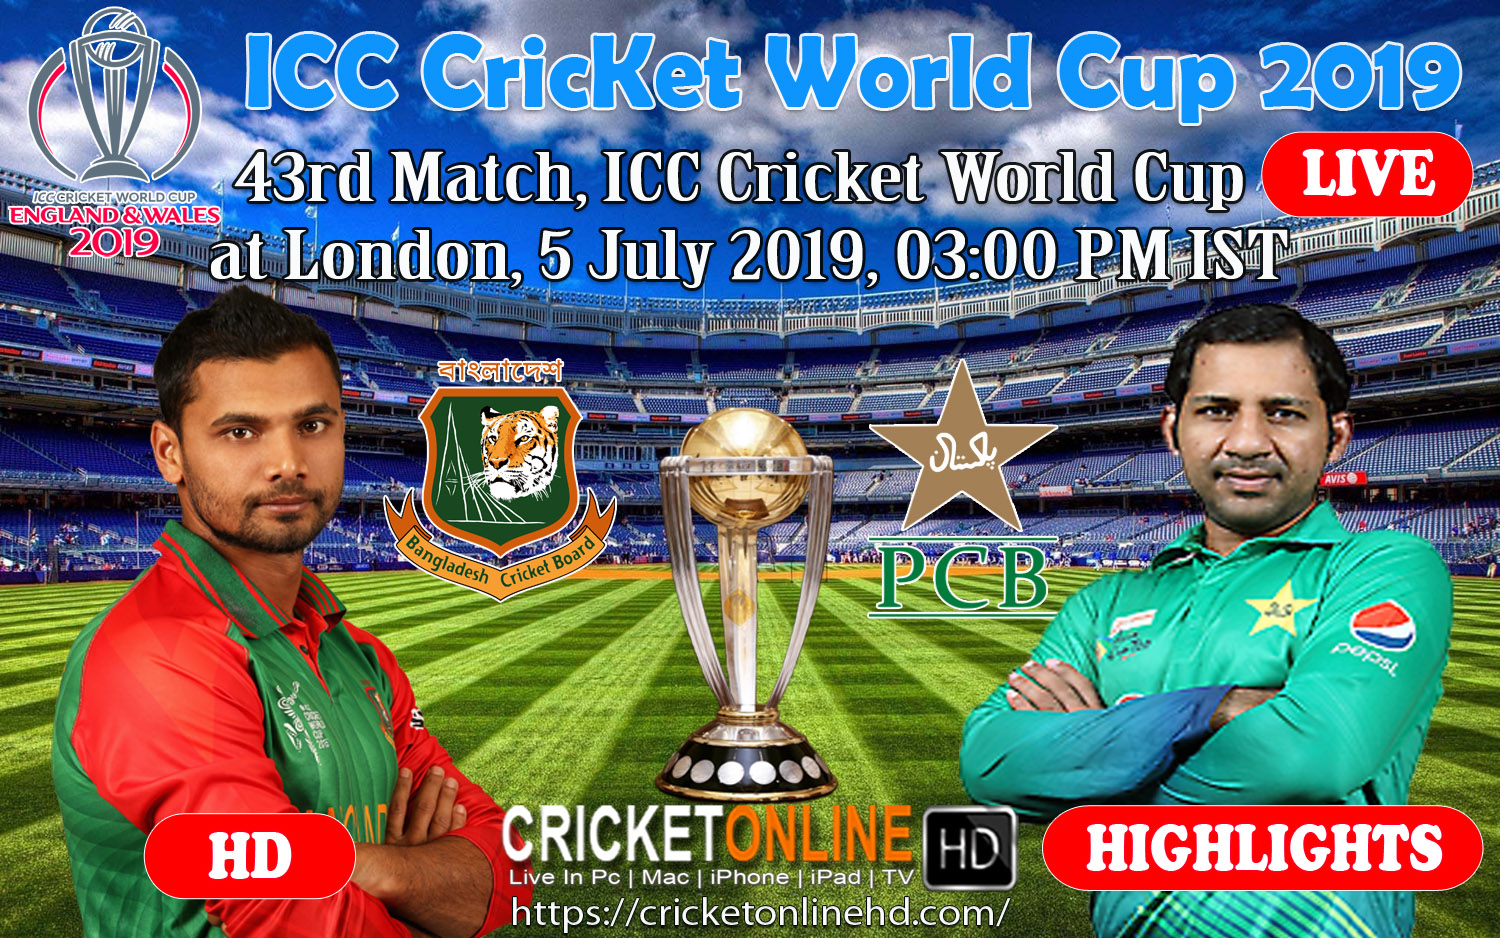 Bangladesh Vs Pakistan 43rd Match, ICC World Cup 2019 Schedule at Lord's, Jul 5 2019